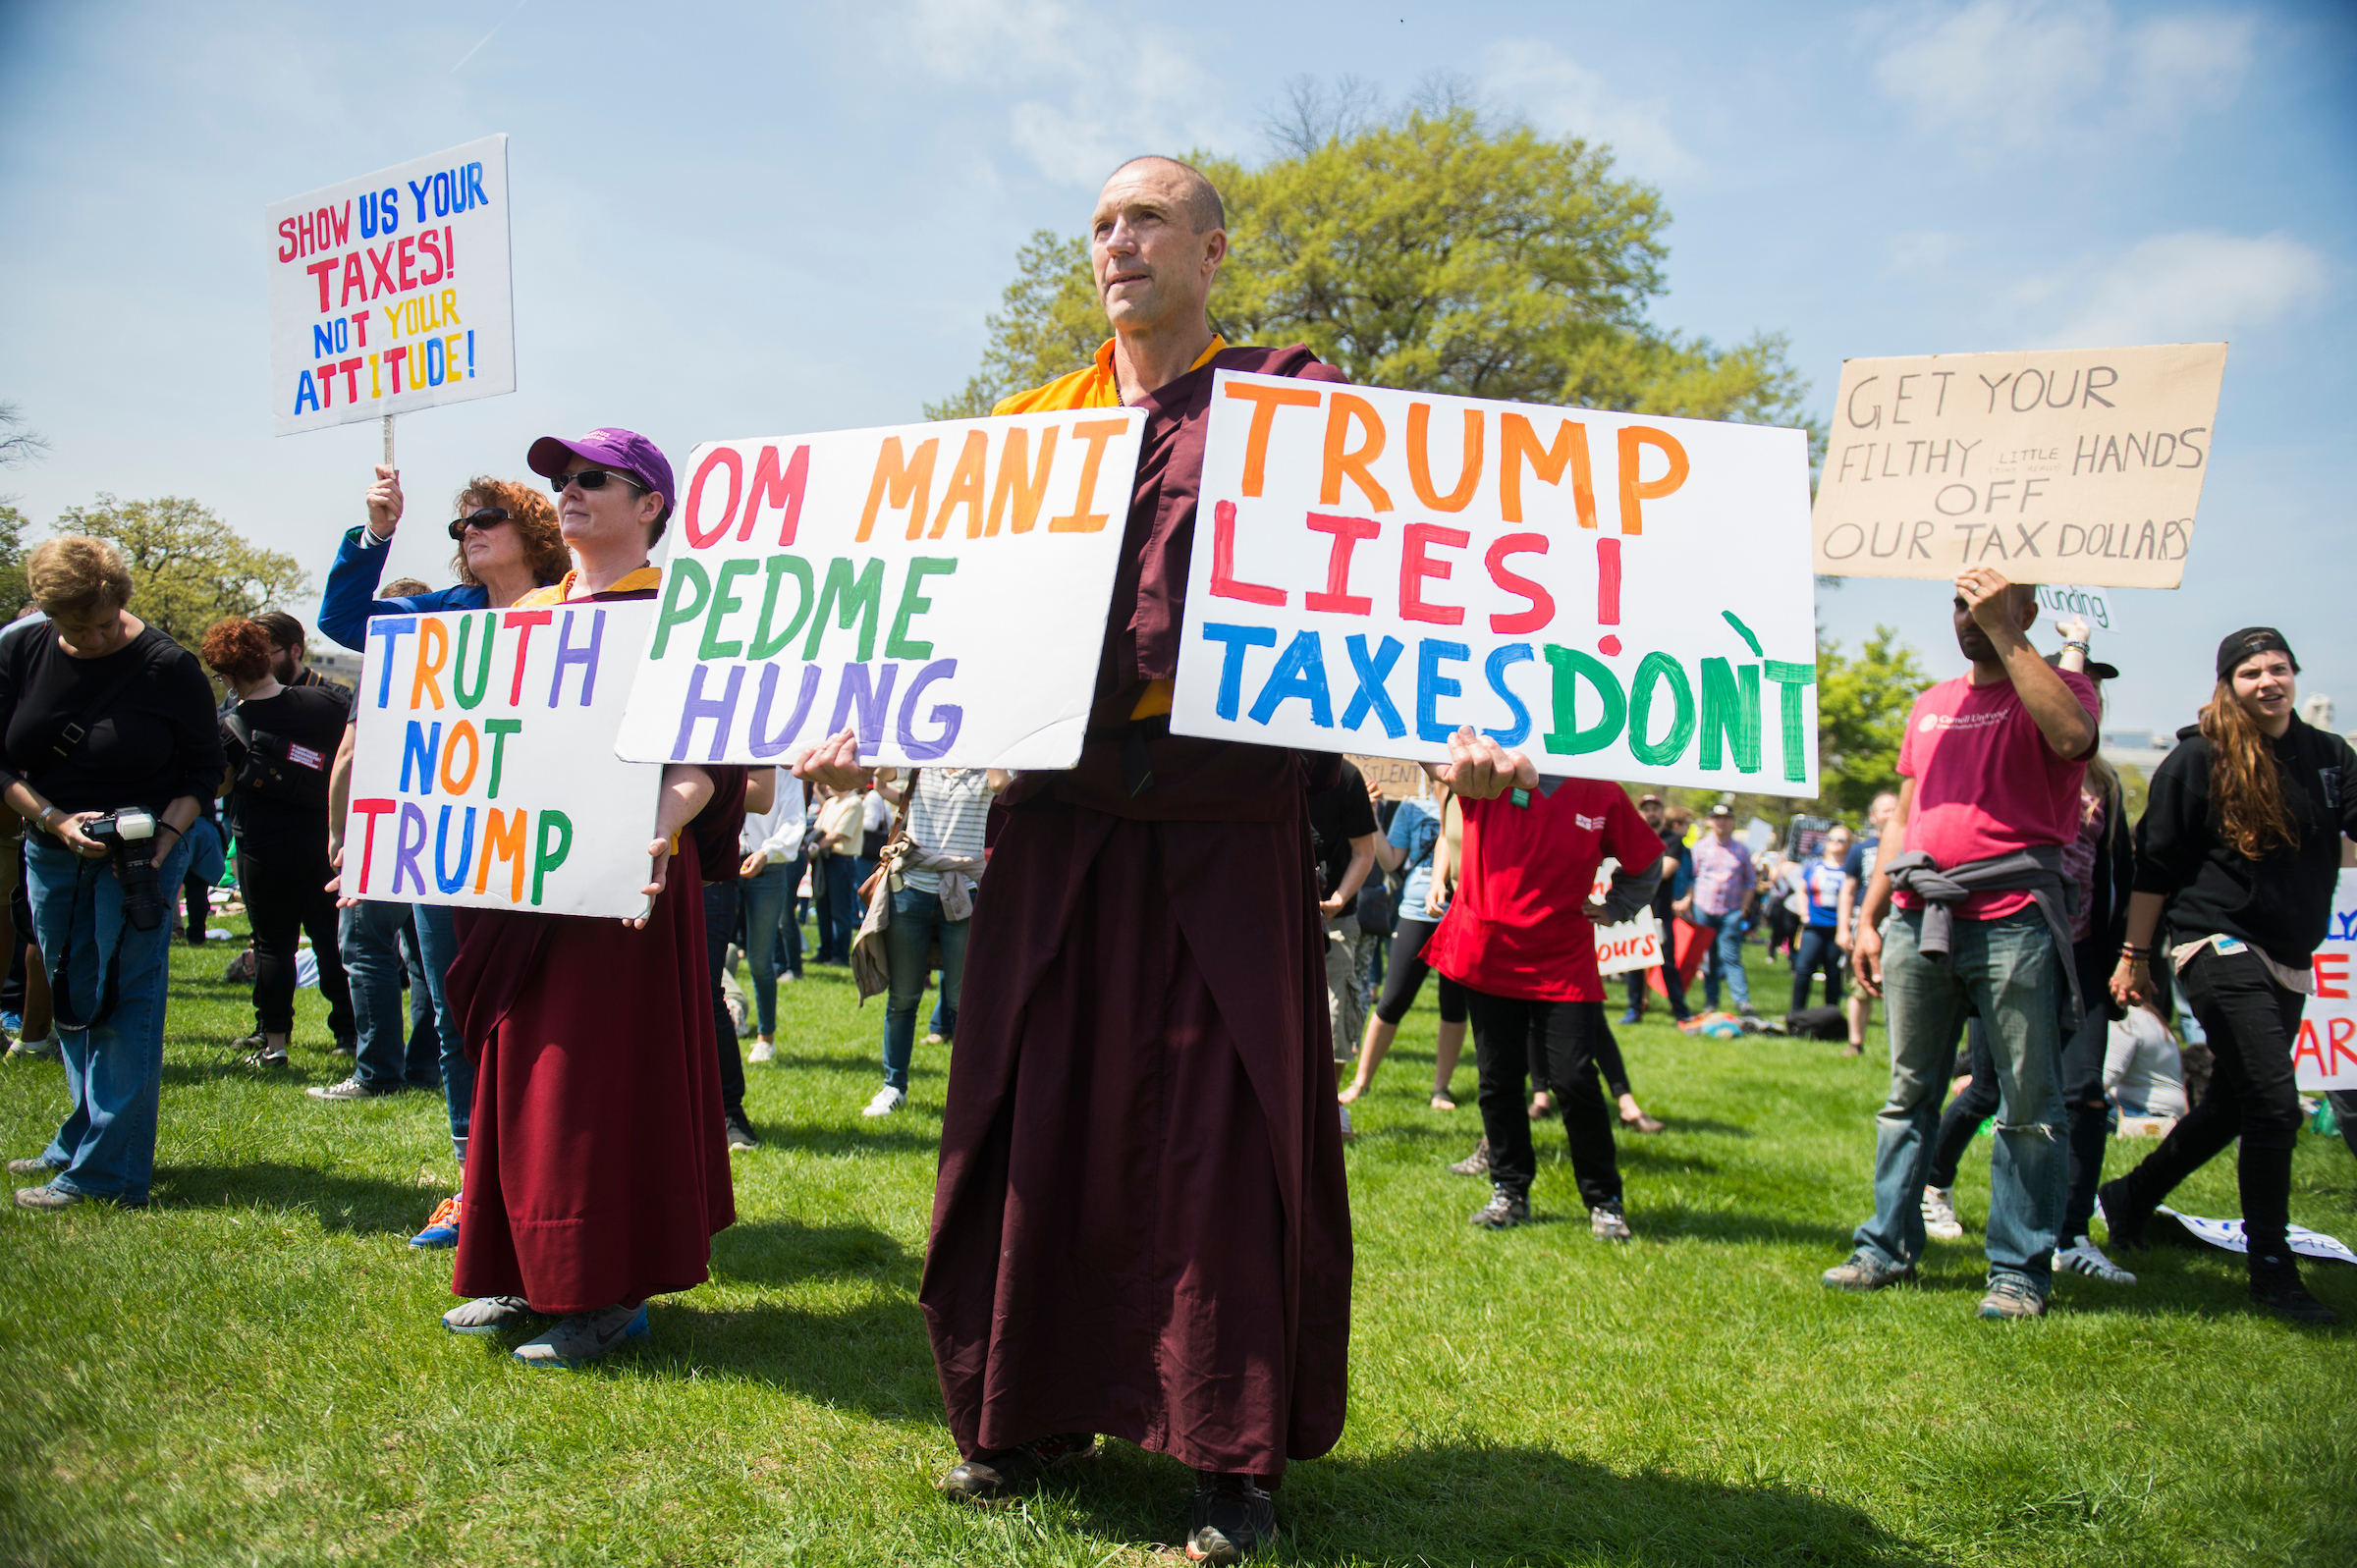 Buddhist monk Jampal Rowe of Poolesville, Md., attends the Tax March. (Tom Williams/CQ Roll Call)